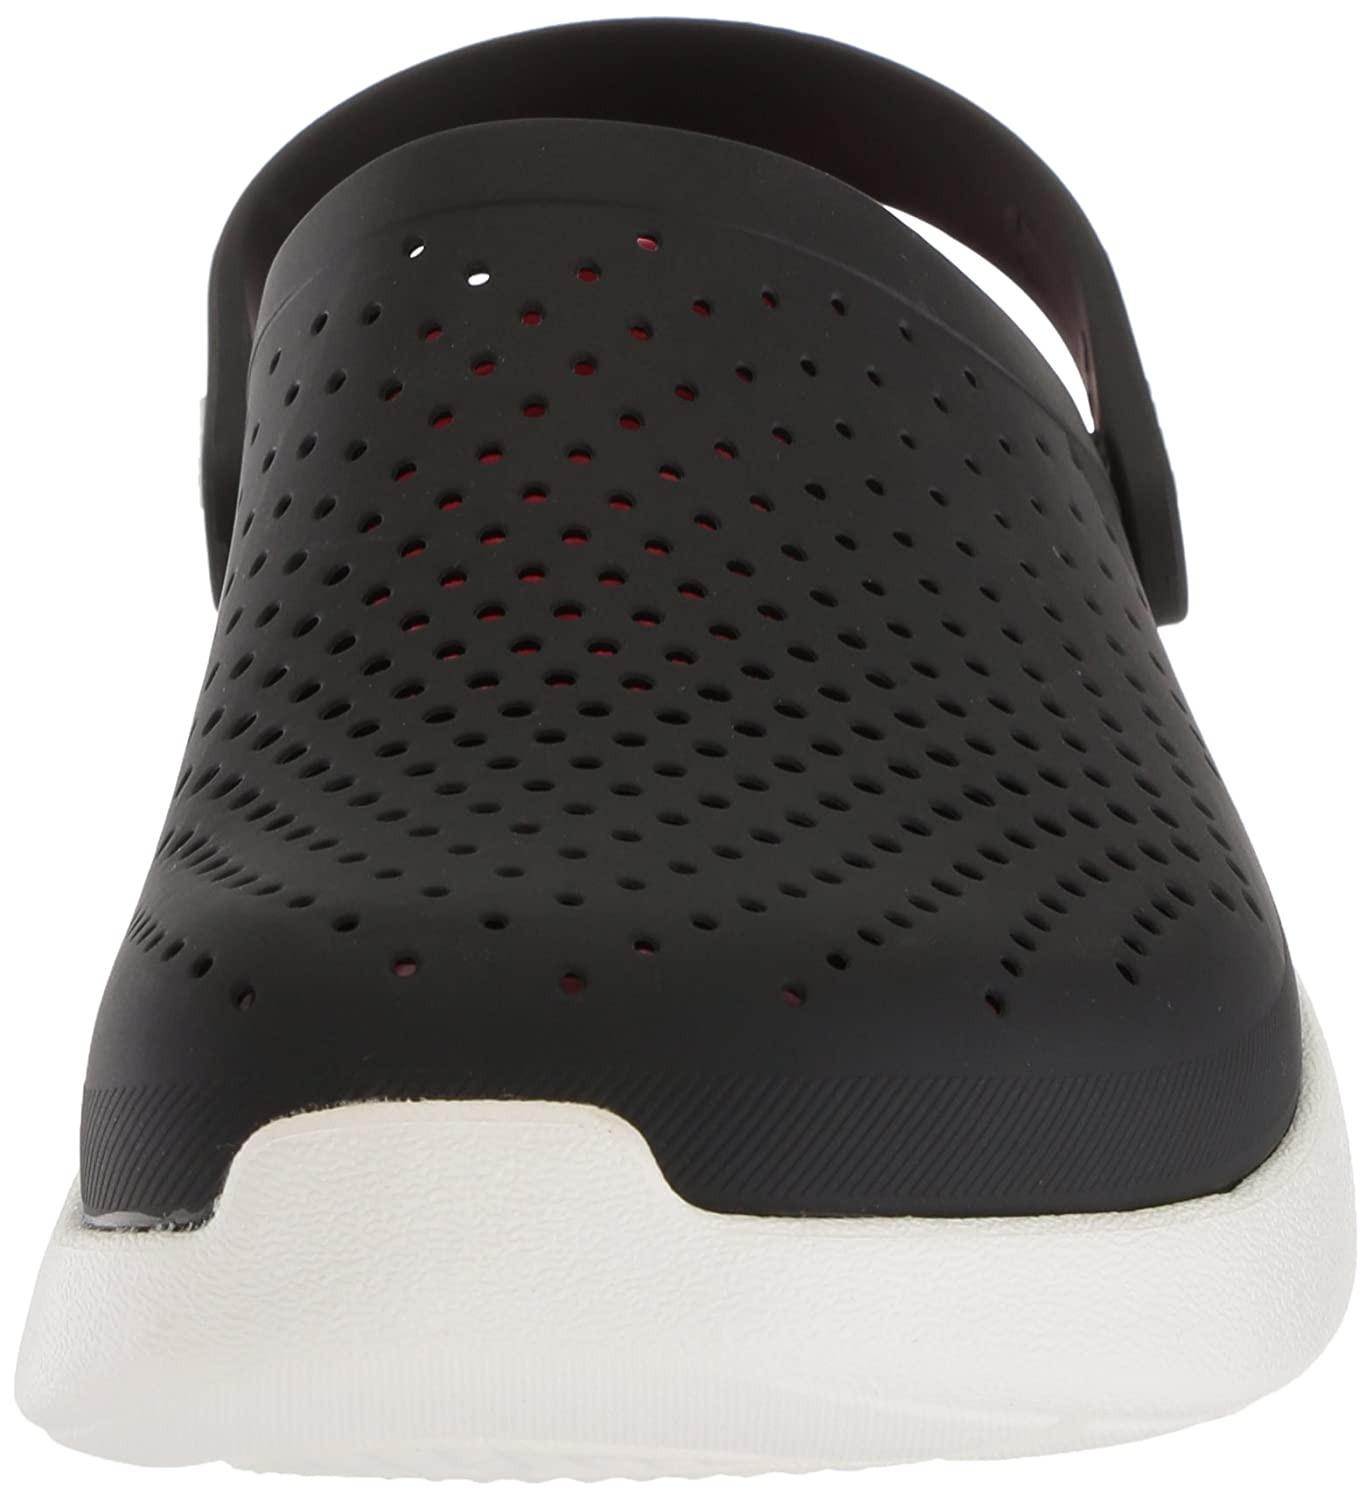 47dbede83 crocs Unisex s Lite Ride Clogs  Buy Online at Low Prices in India -  Amazon.in